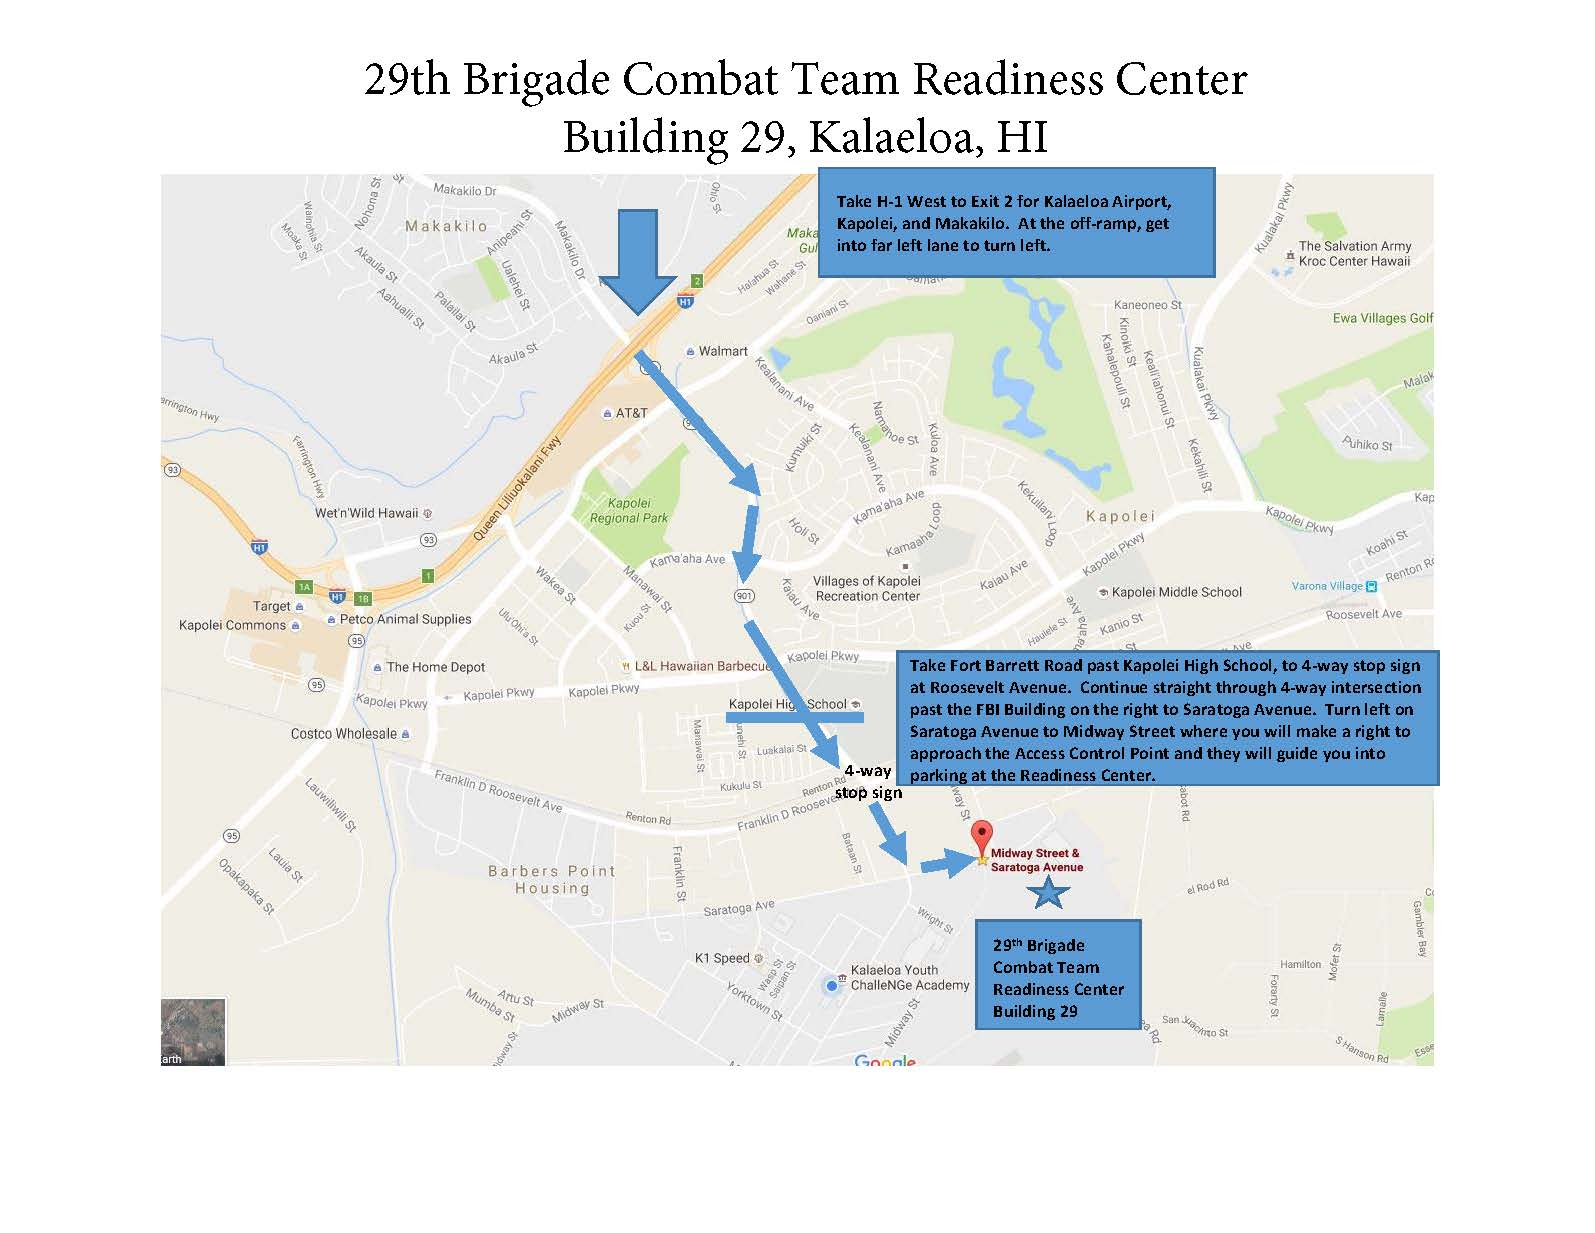 Directions to Readiness Center